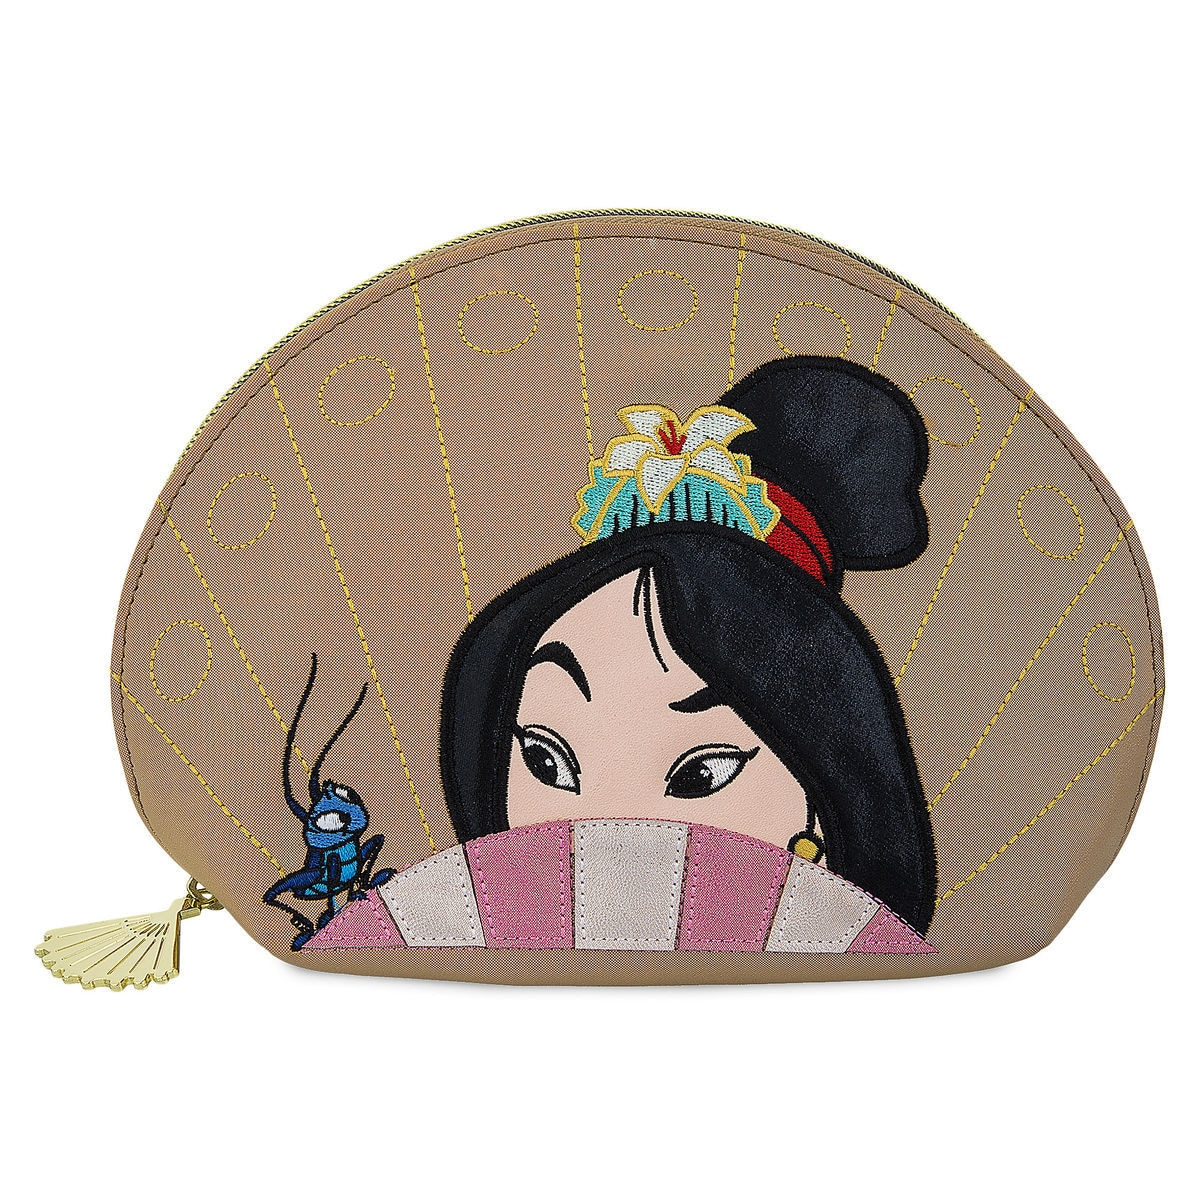 Product Image Of Mulan Cosmetic Bag By Danielle Nicole 1